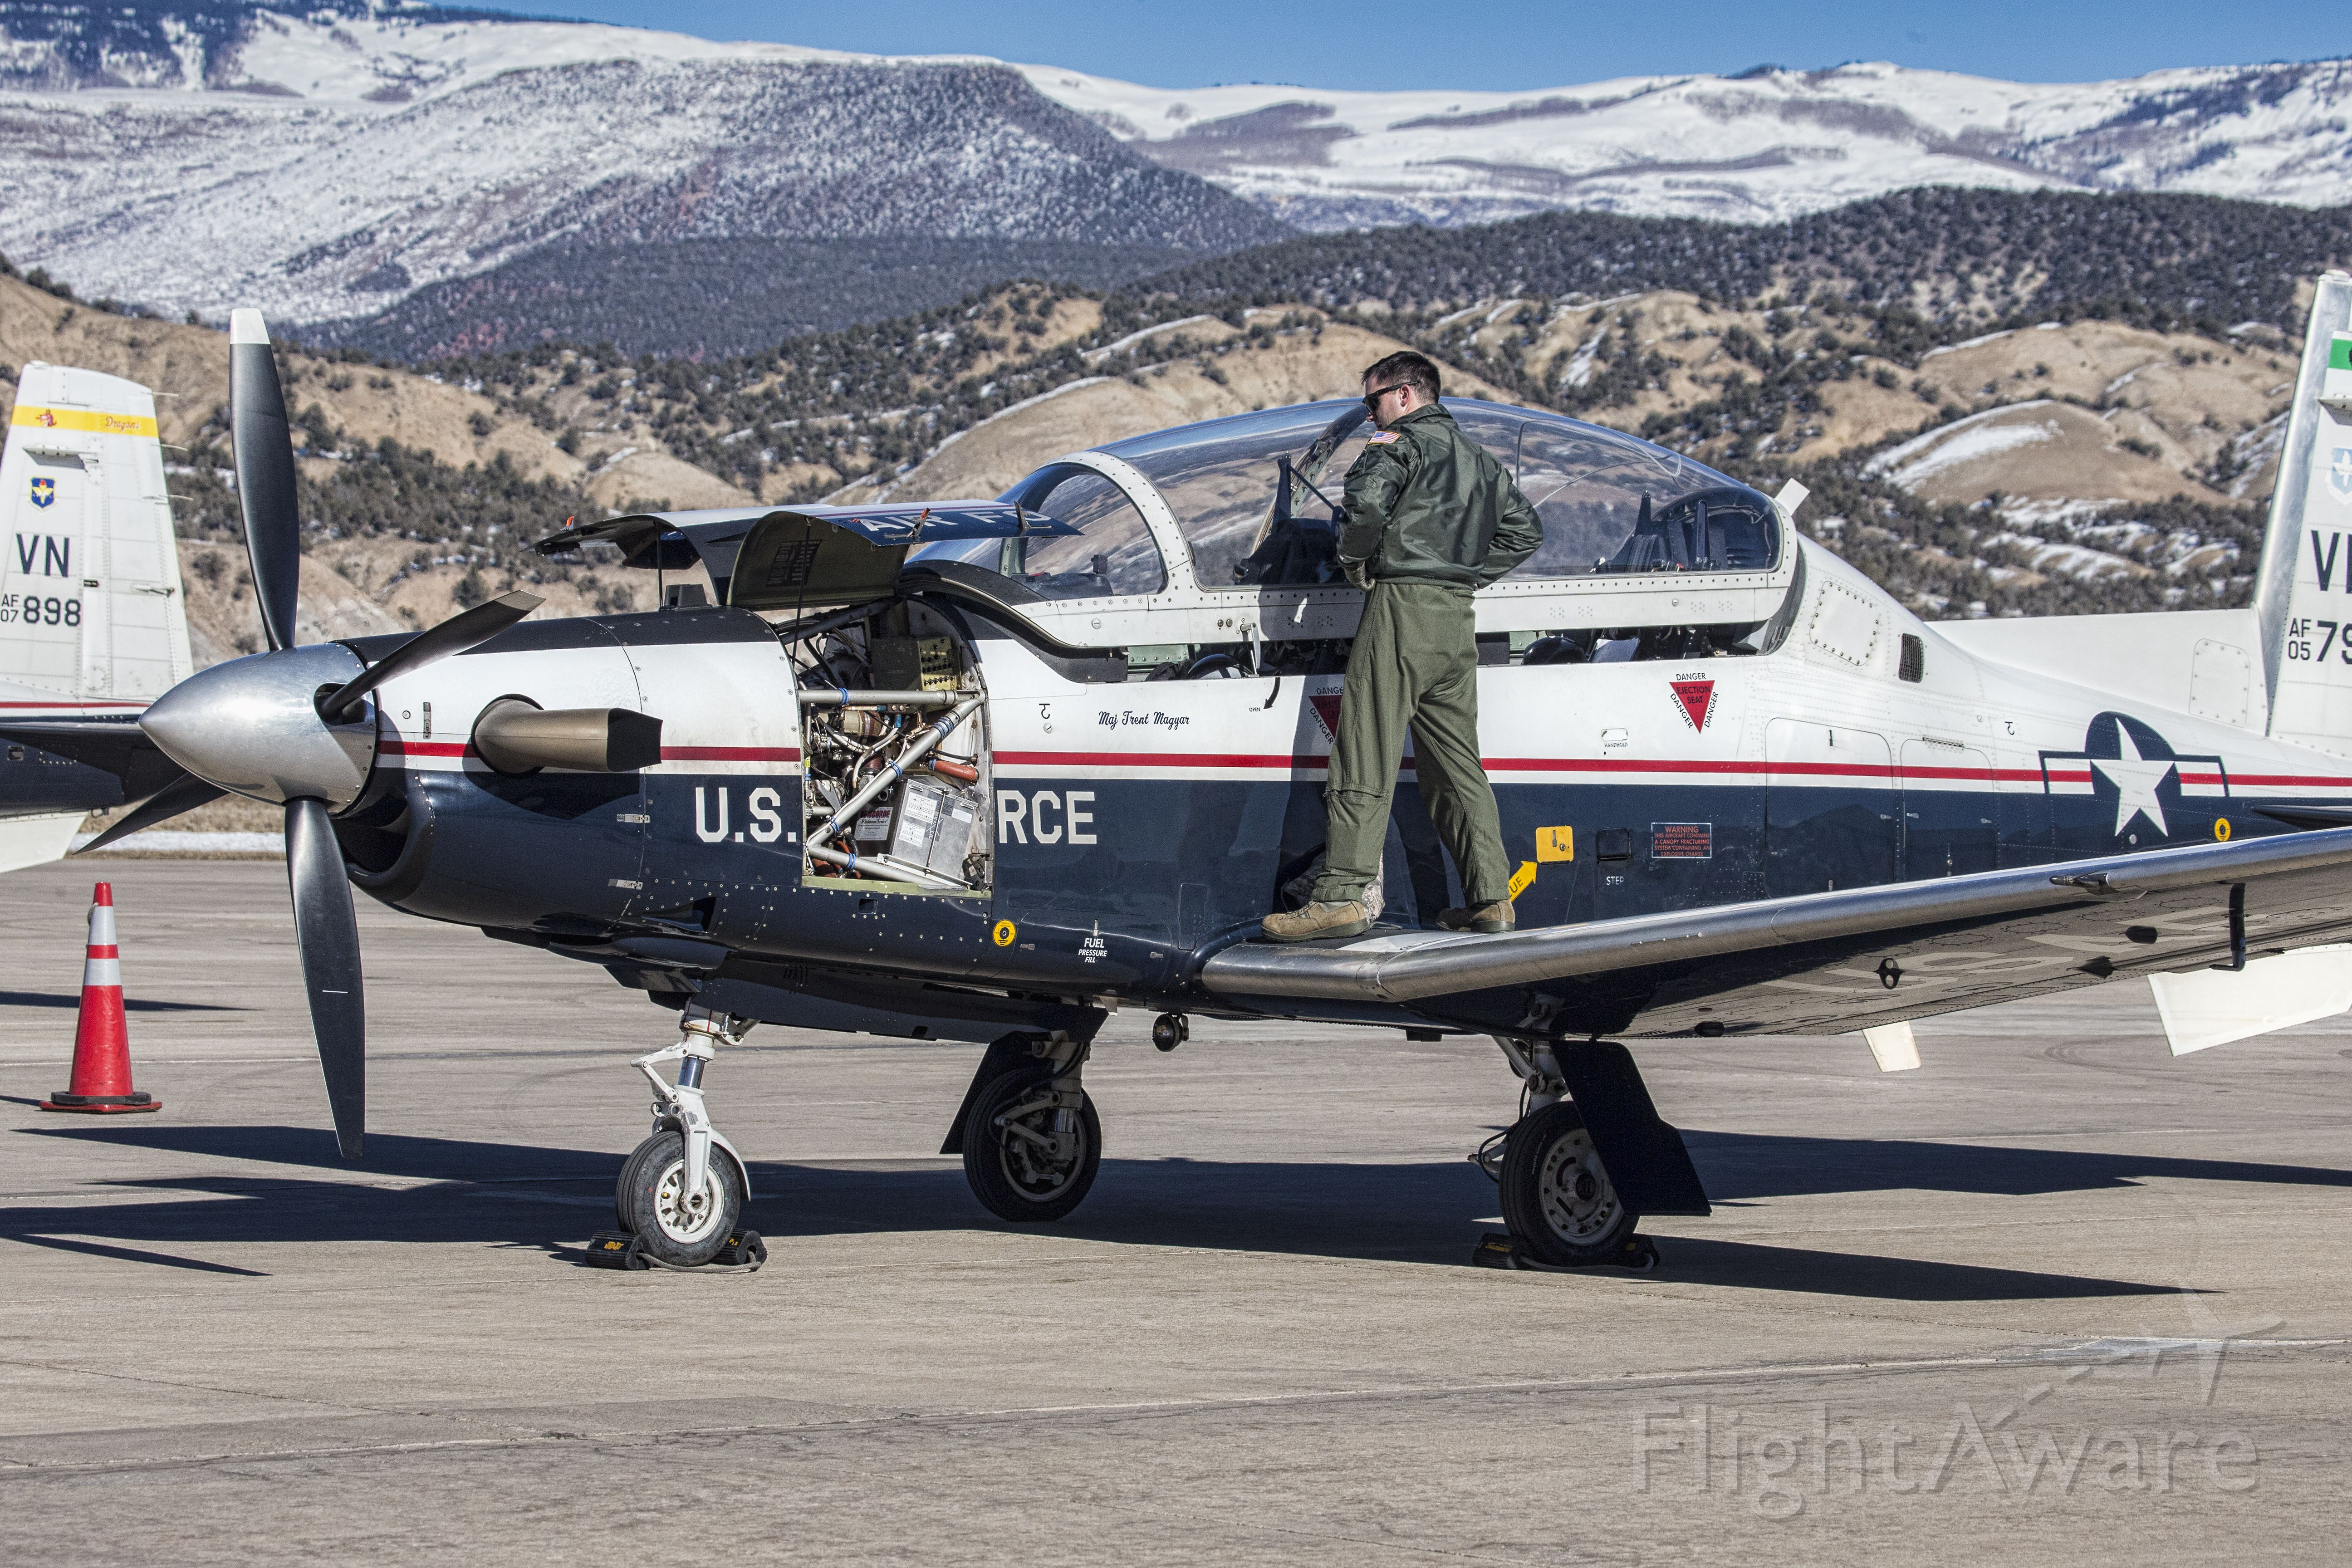 — — - T-6C Texan II Turboprop Military Trainer (Hawker Beechcraft) for Air Force, Marine Corps, Navy and Coastguard. Photo taken at Eagle County Regional Airport, KEGE